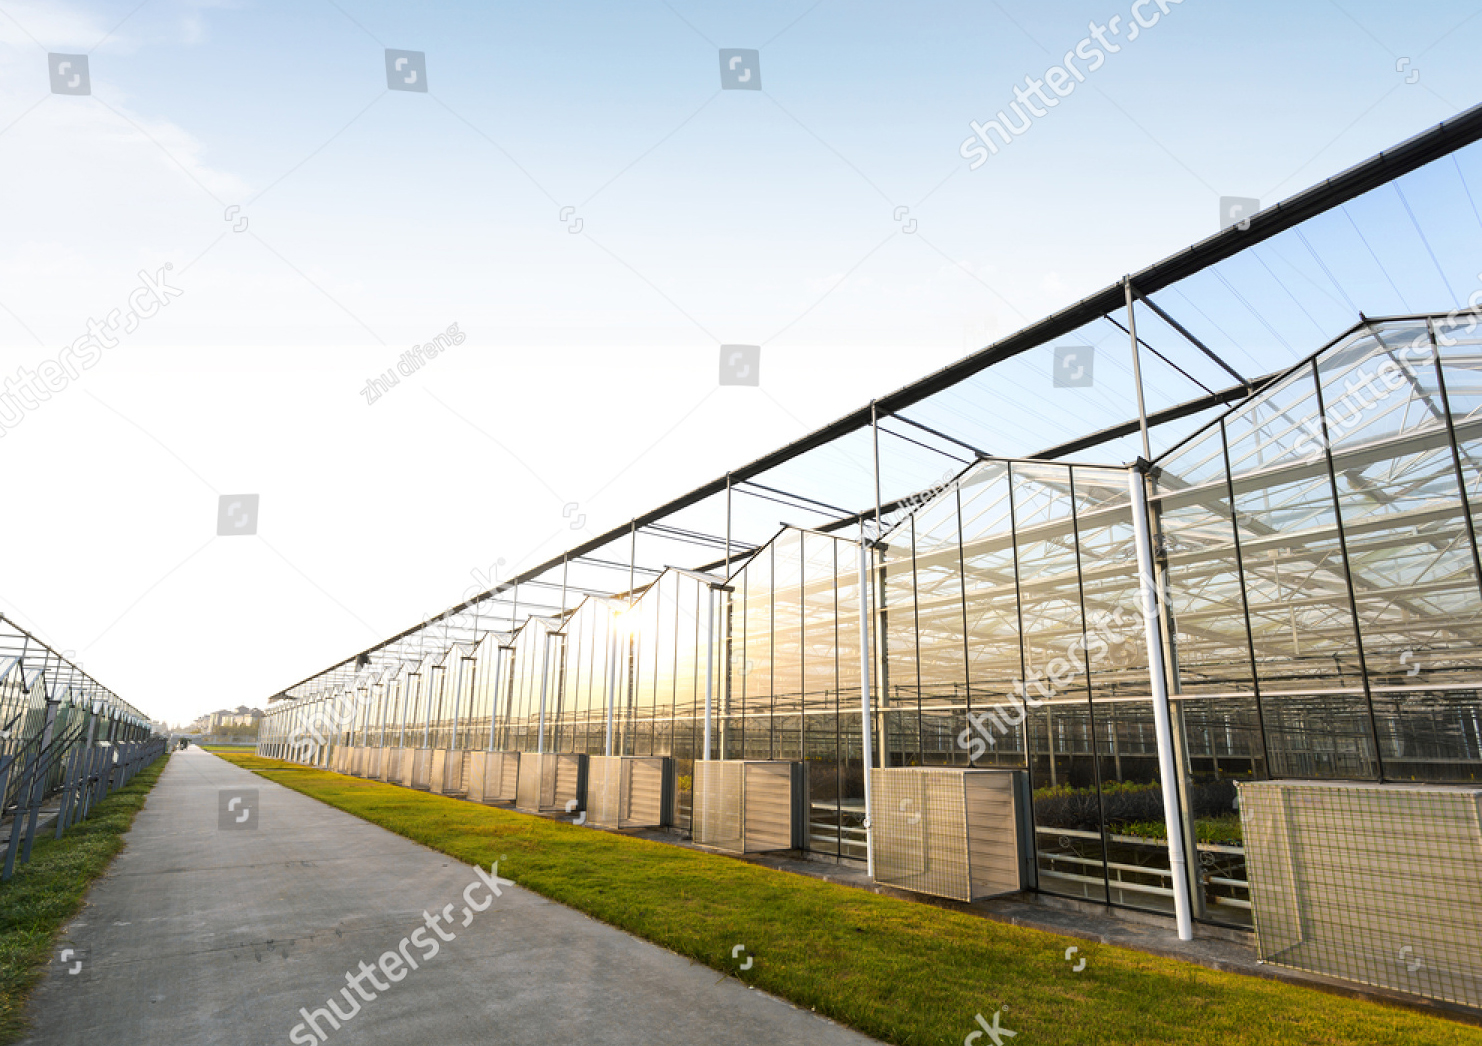 stock-photo-background-of-a-commercial-greenhouse-170583722_klein